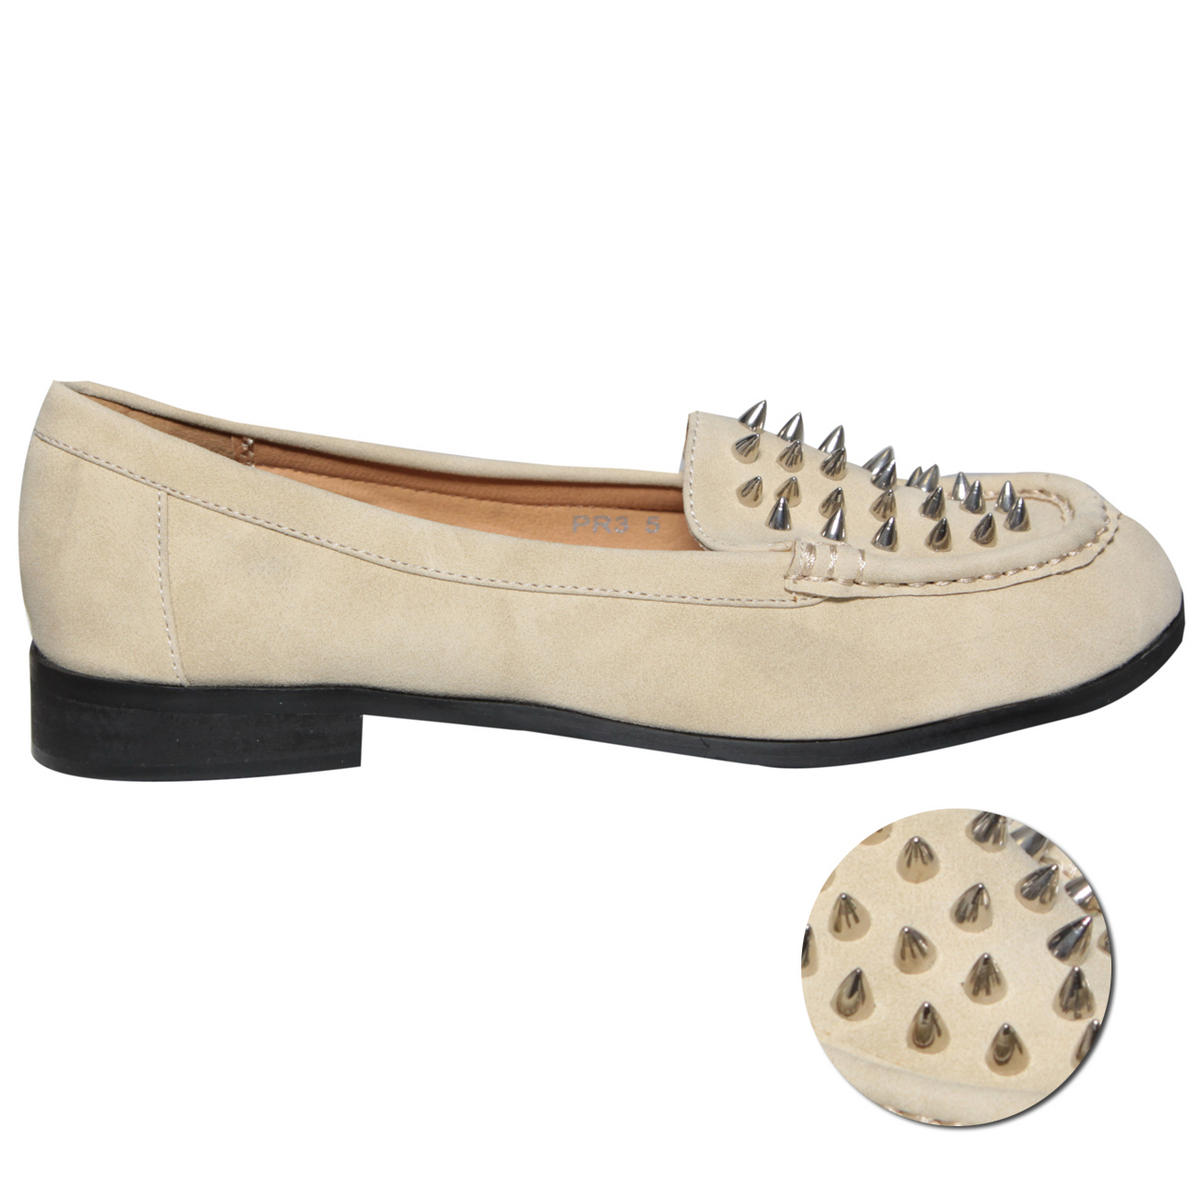 Cream Spike Studded Loafer Shoe Preview